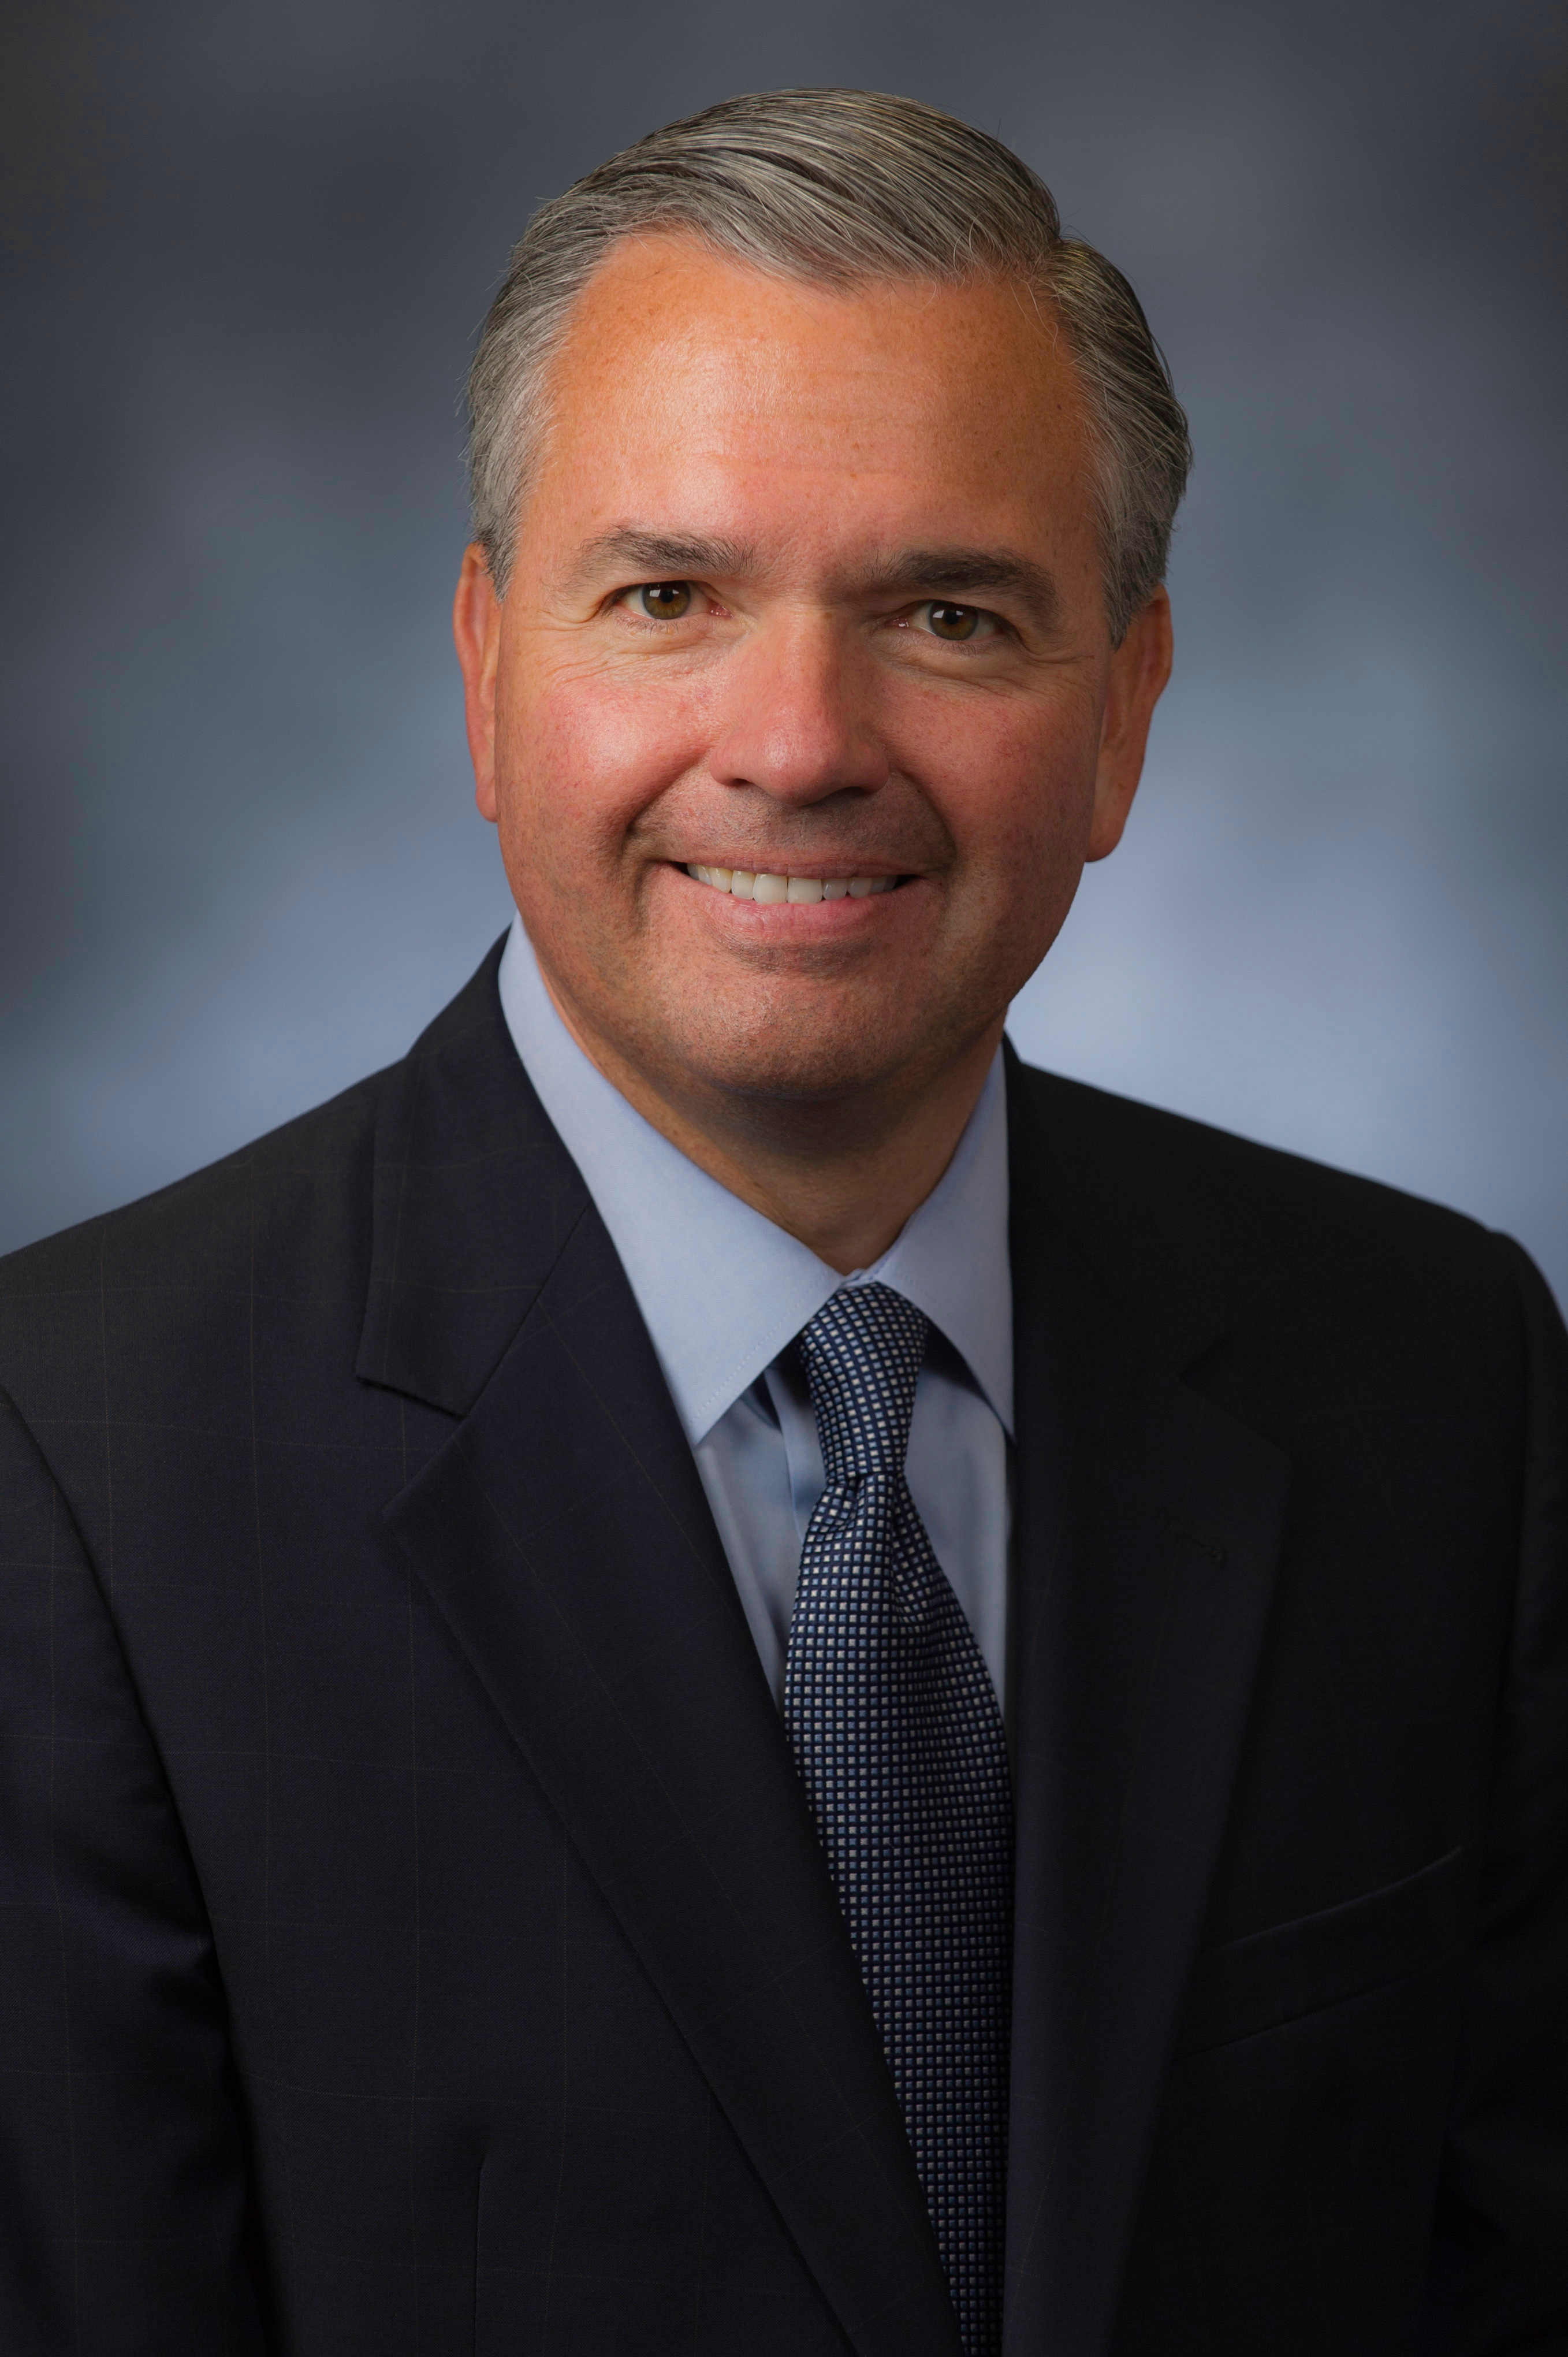 J. Donald Sheets, Dow Corning executive vice president and chief financial officer